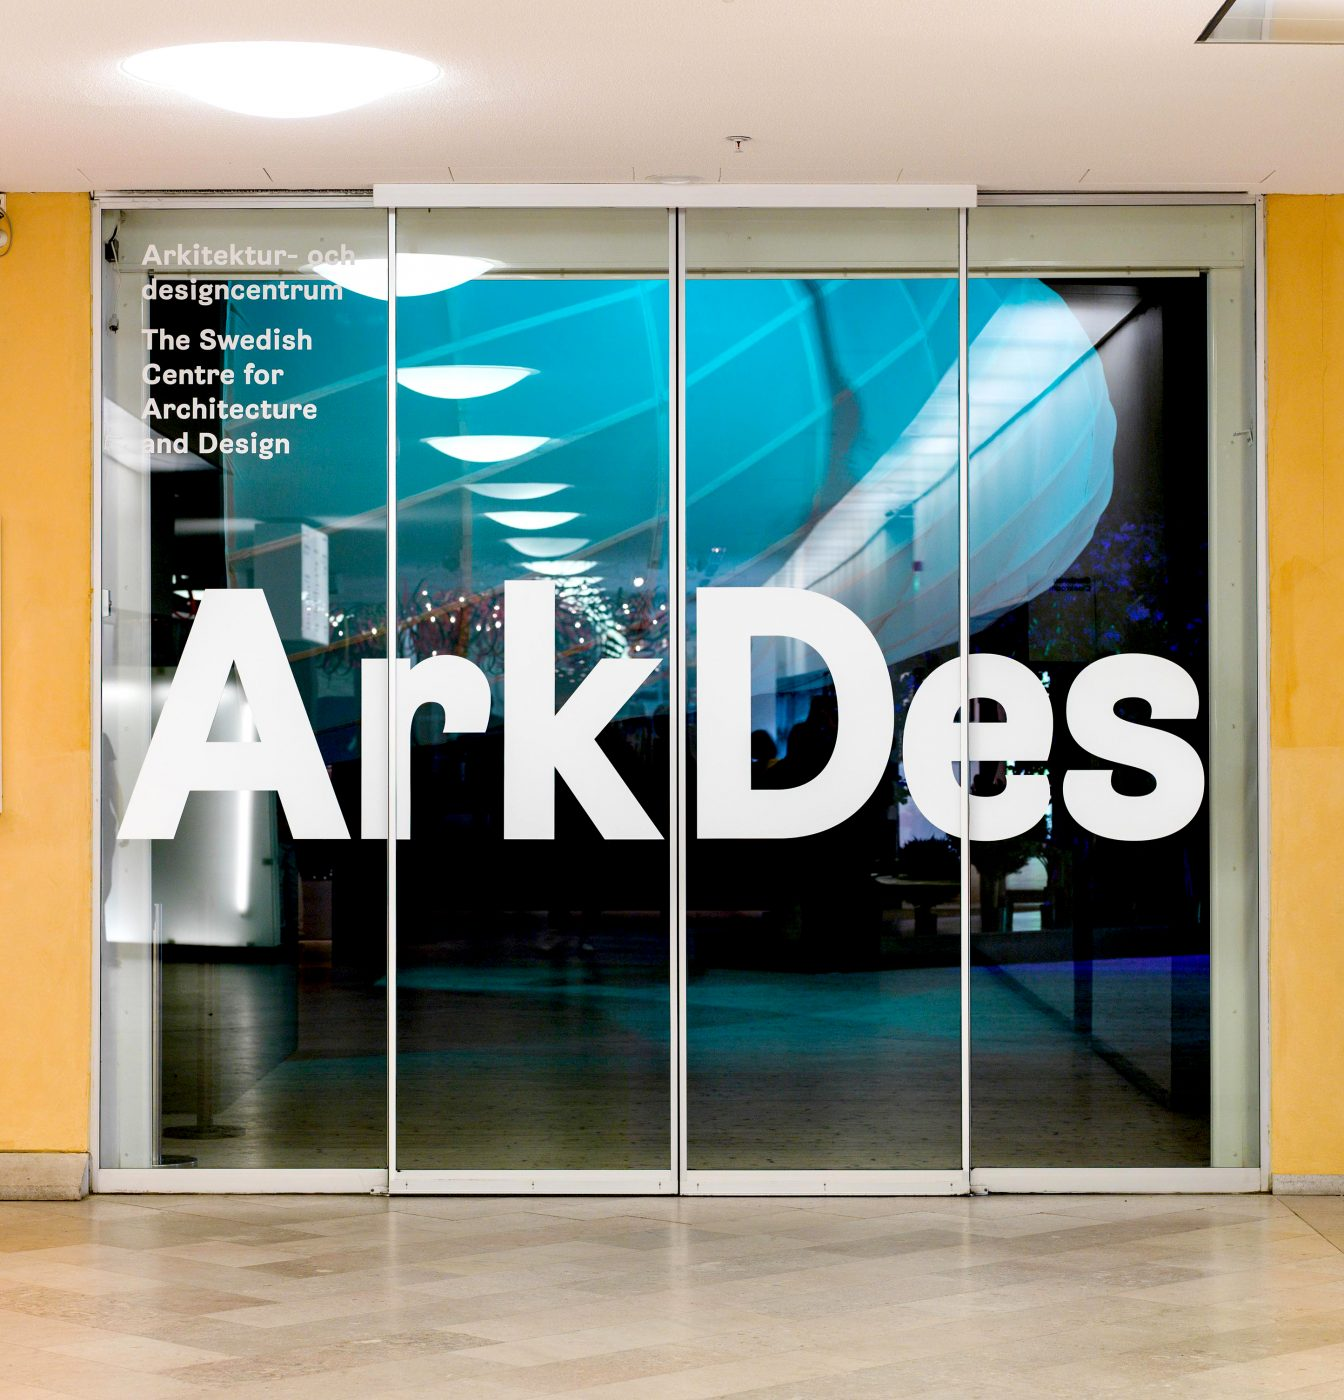 Client: ArkDes Project: ArkDes social media  Social media marketing and management for ArkDes - Stockholm's center for architecture and design.